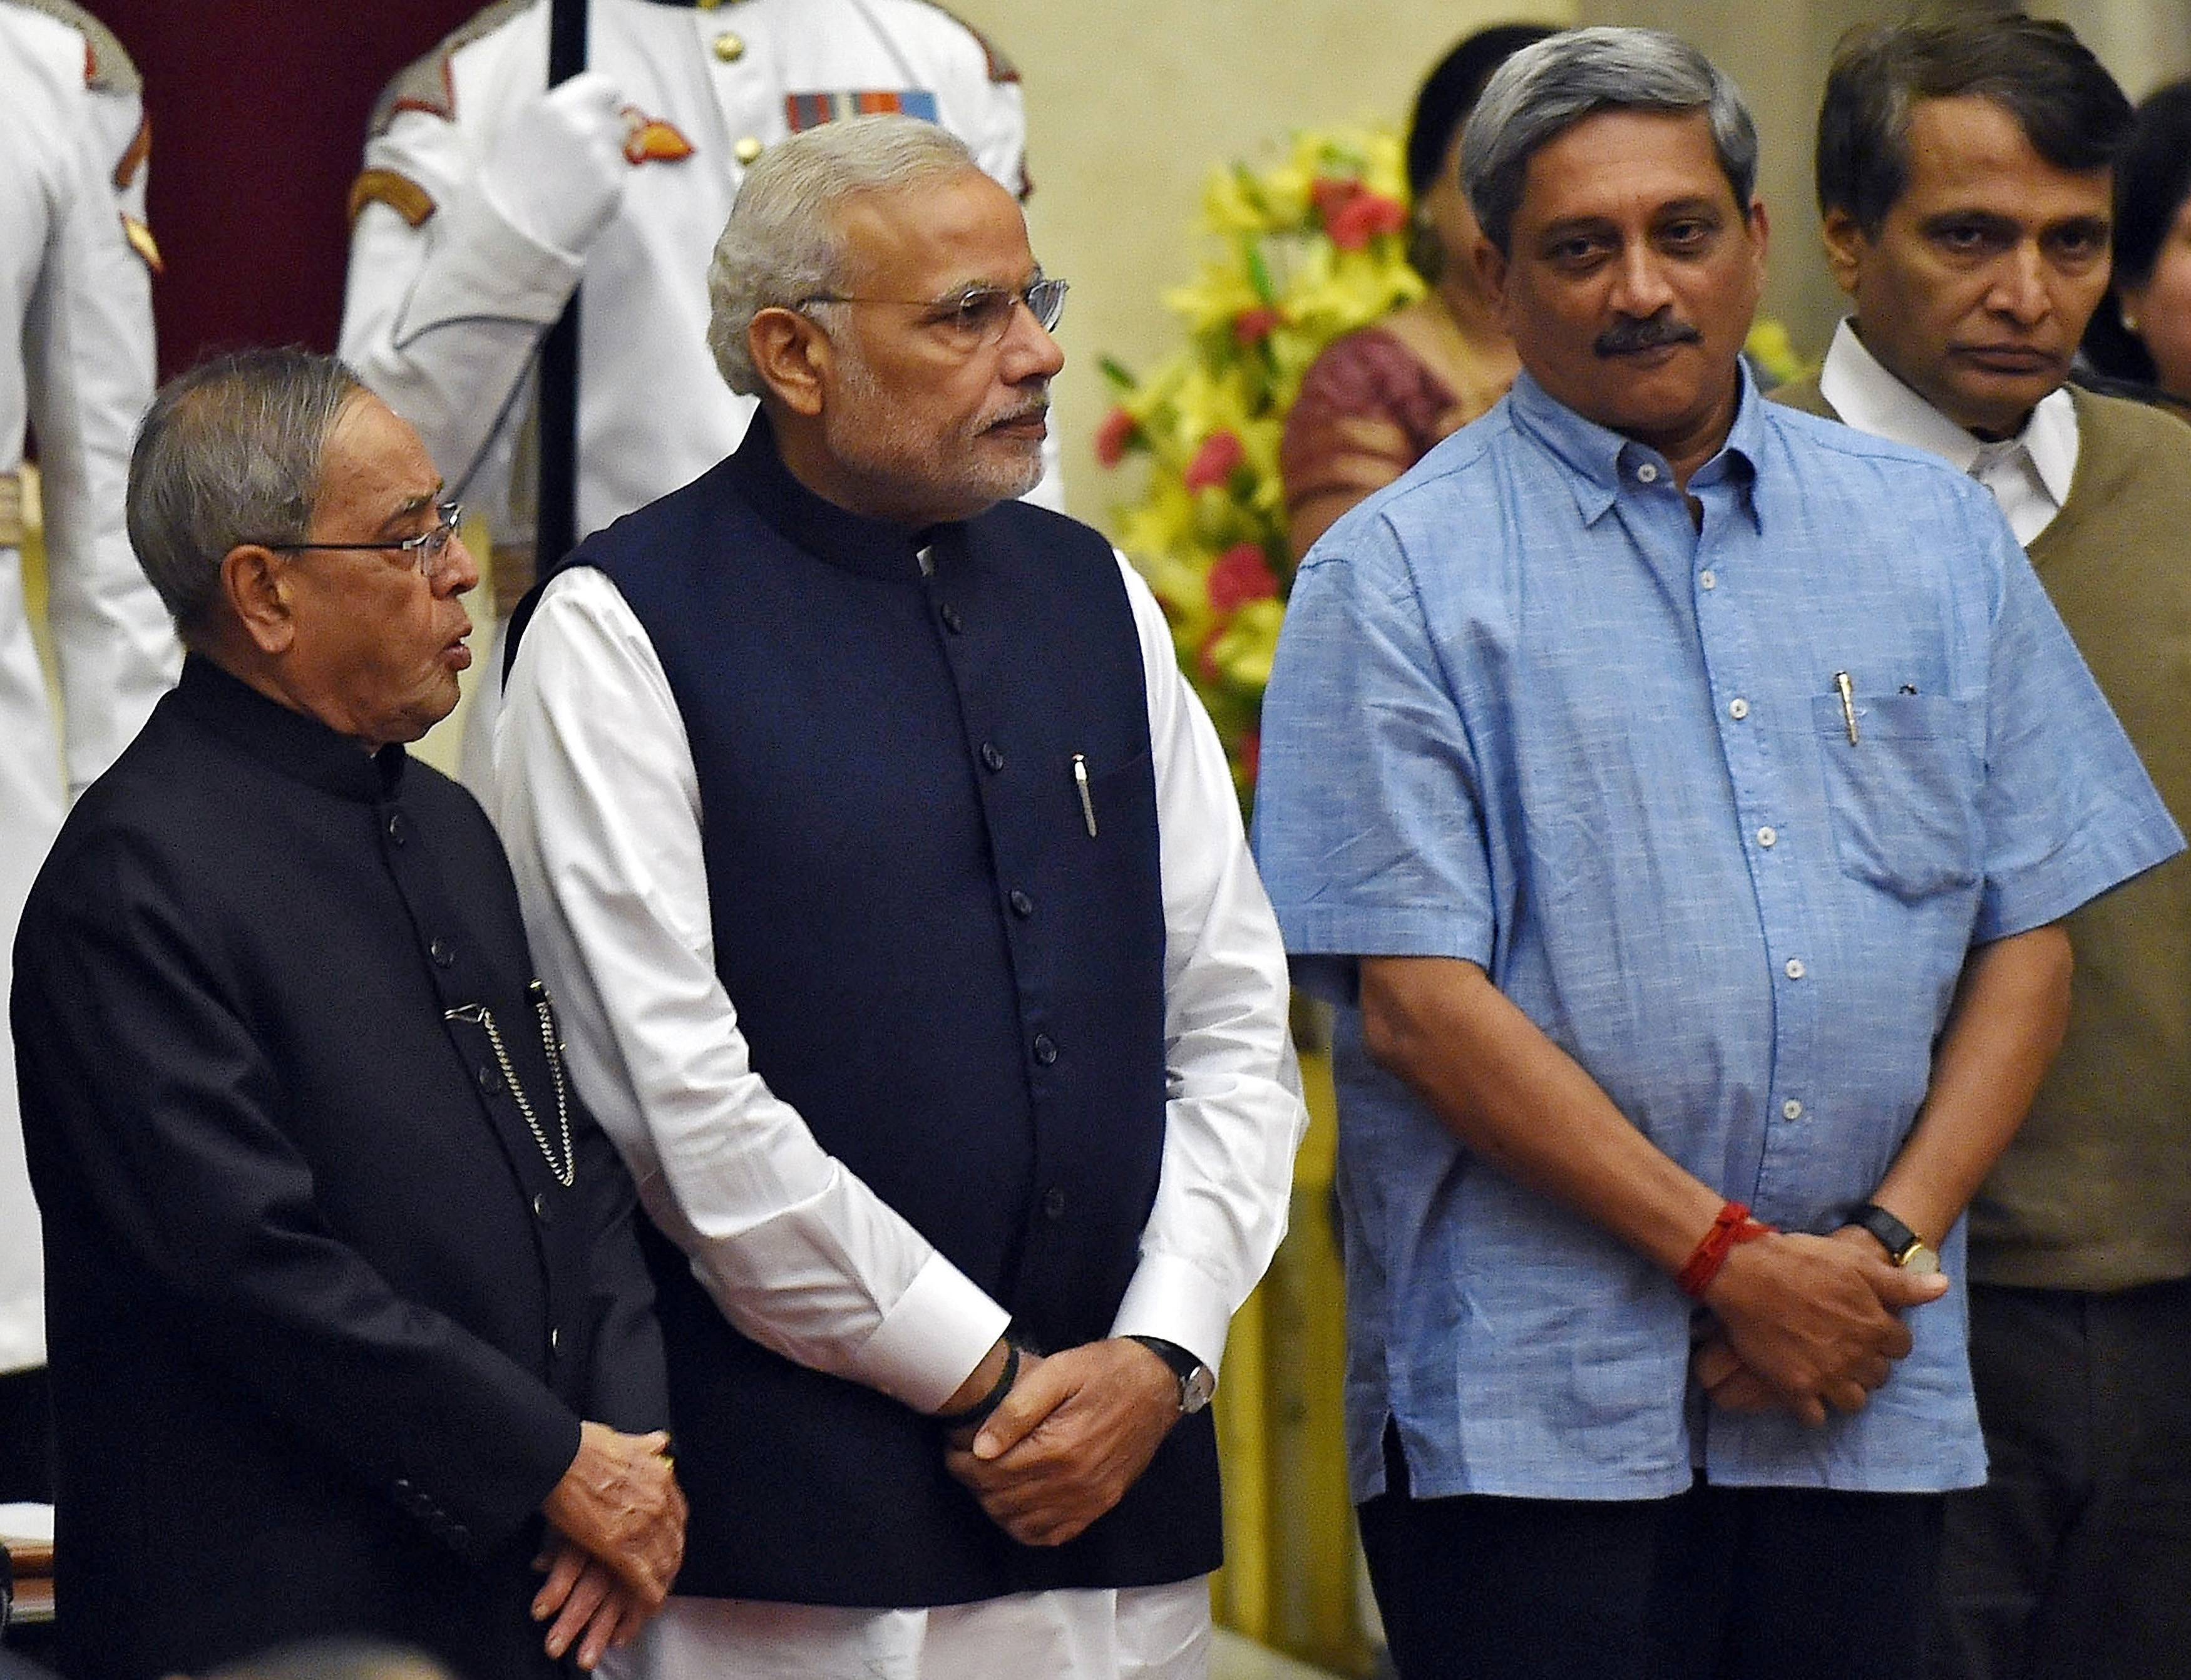 India's President Pranab Mukherjee, Prime Minister Narendra Modi, new cabinet ministers Manohar Parrikar and Suresh Prabhu pose after a swearing-in ceremony at the presidential palace in New Delhi November 9, 2014.